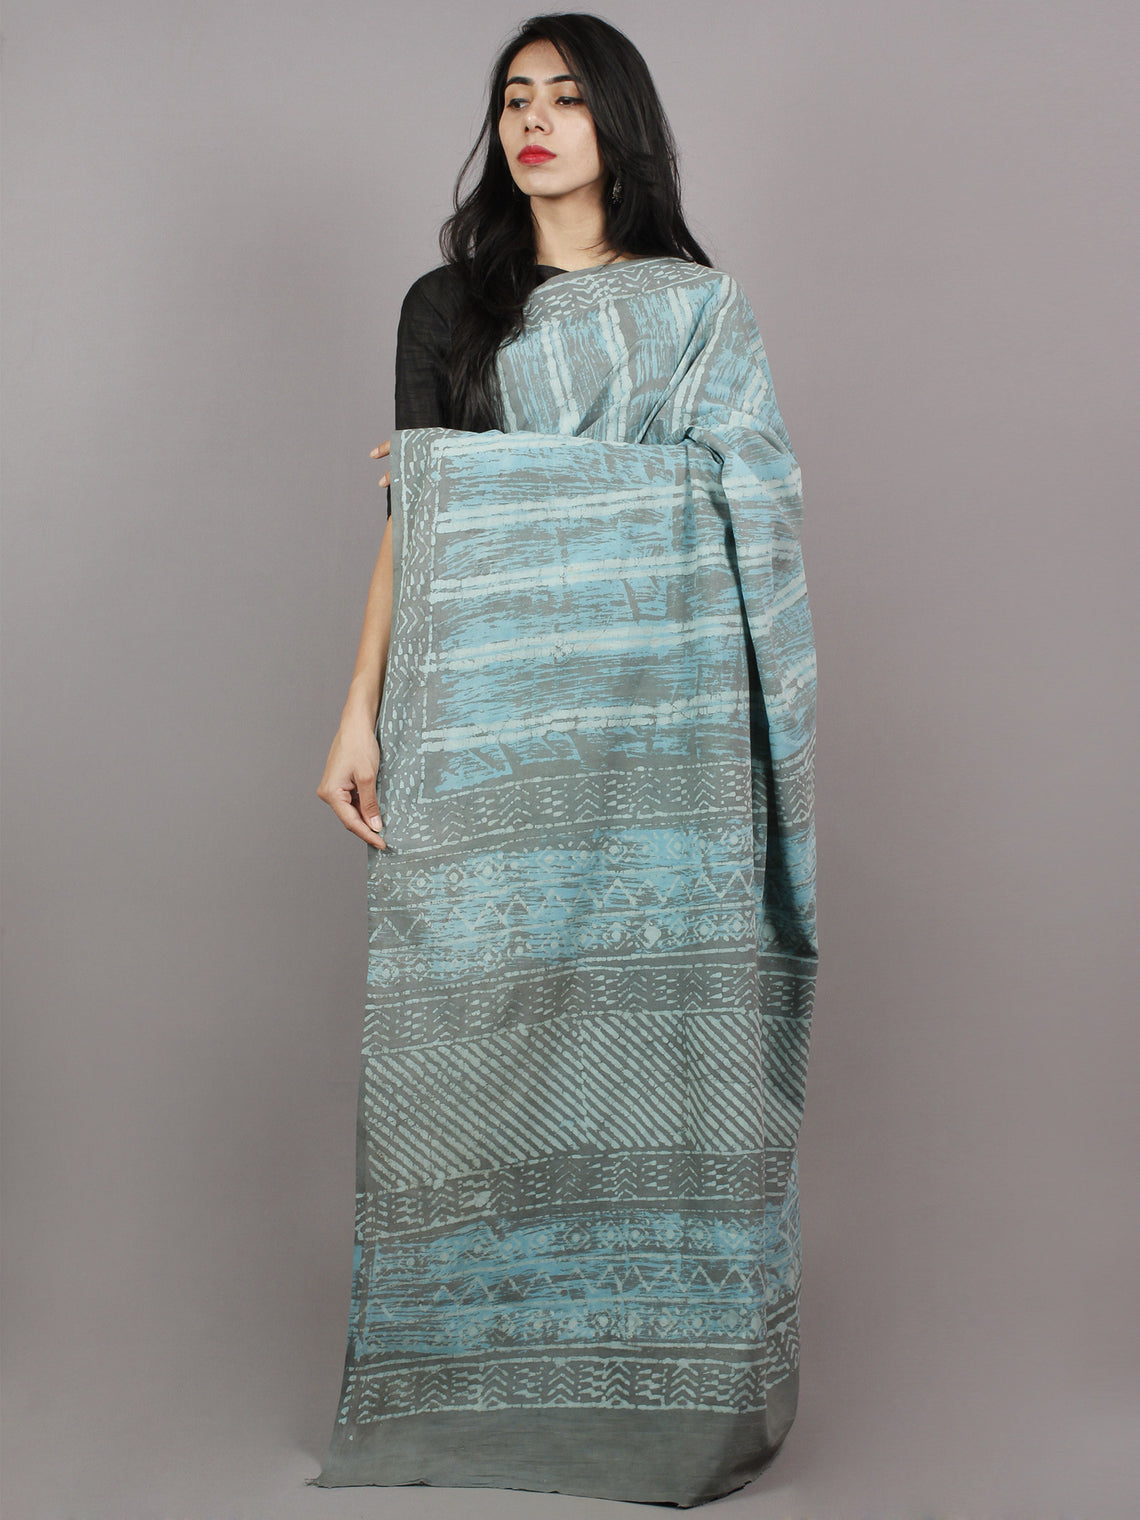 Grey Azure White Hand Block Printed Cotton Saree - S031701368